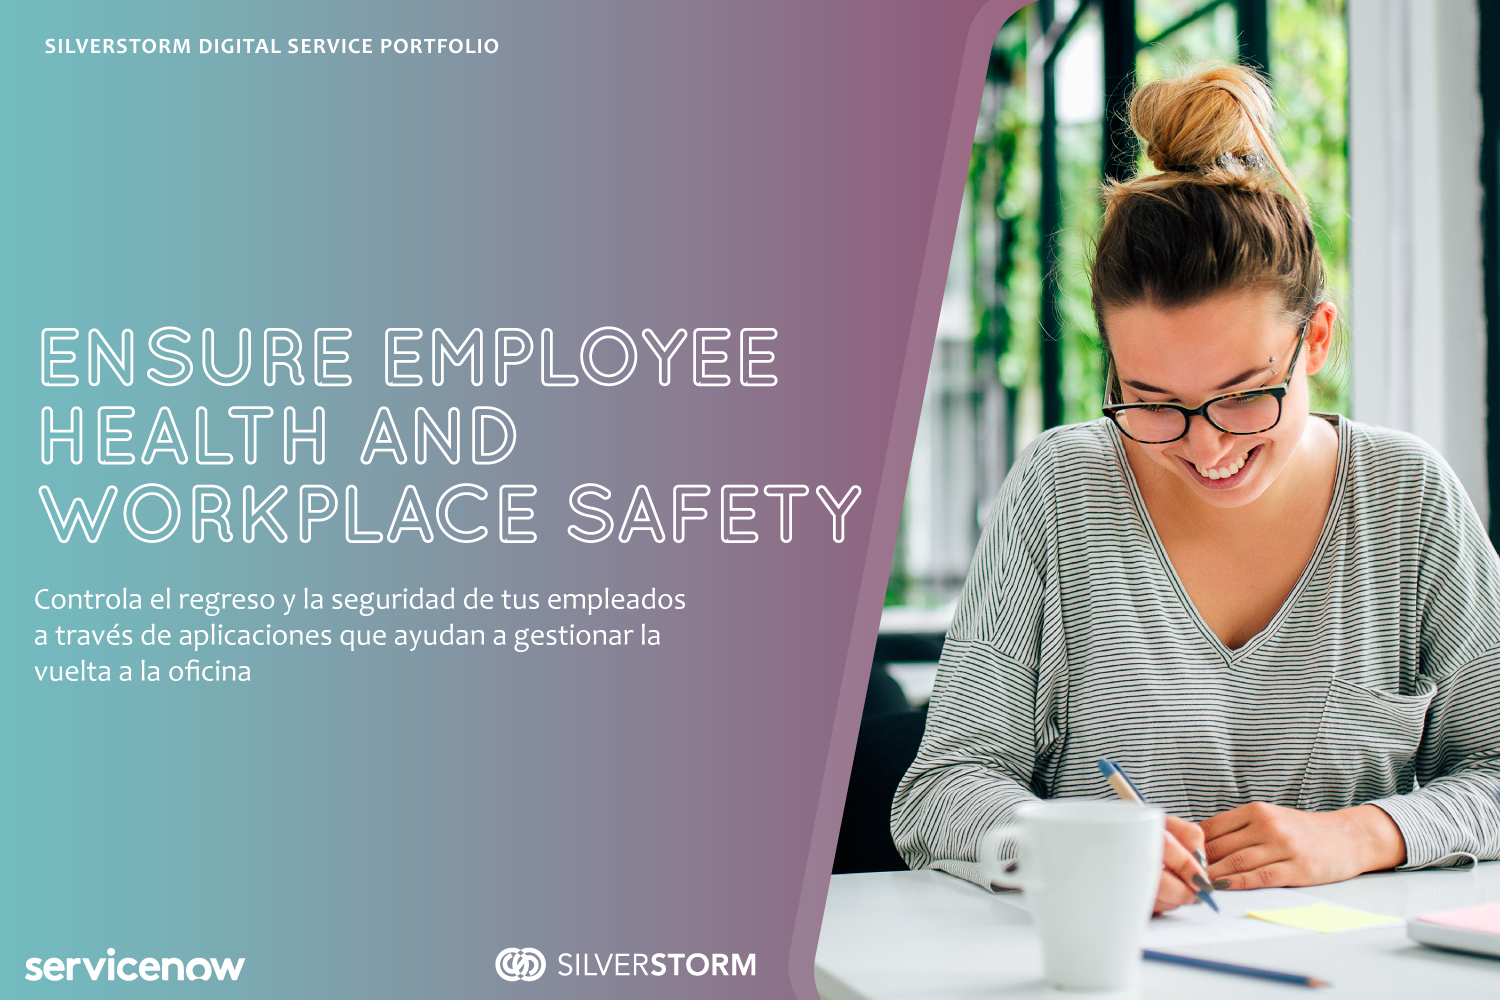 Ensure employee health and workplace safety